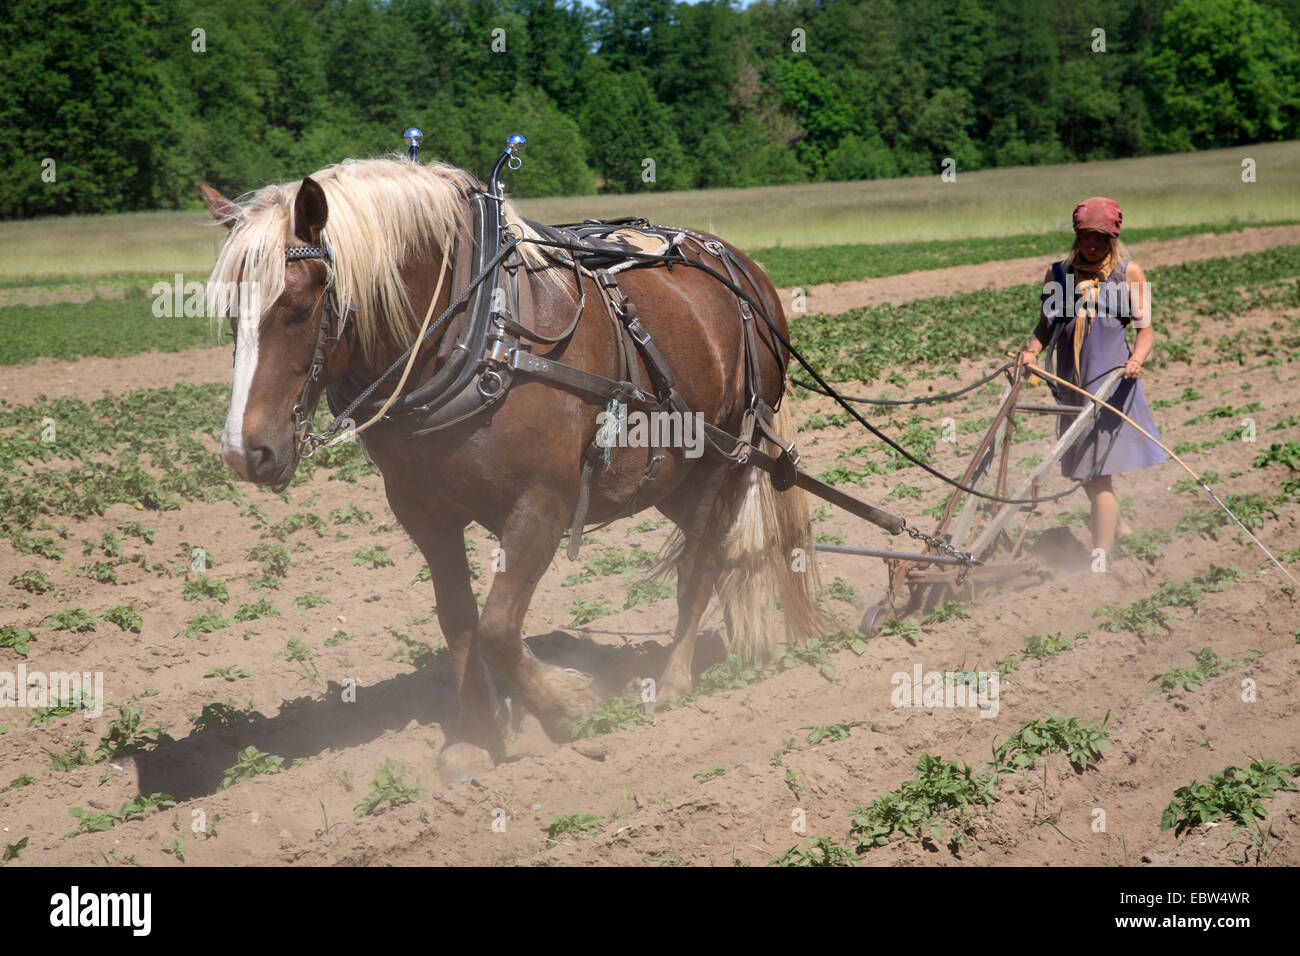 Ecological cultivation by horse, Tangsehl, Wendland, Lower Saxony, Germany, Europe - Stock Image